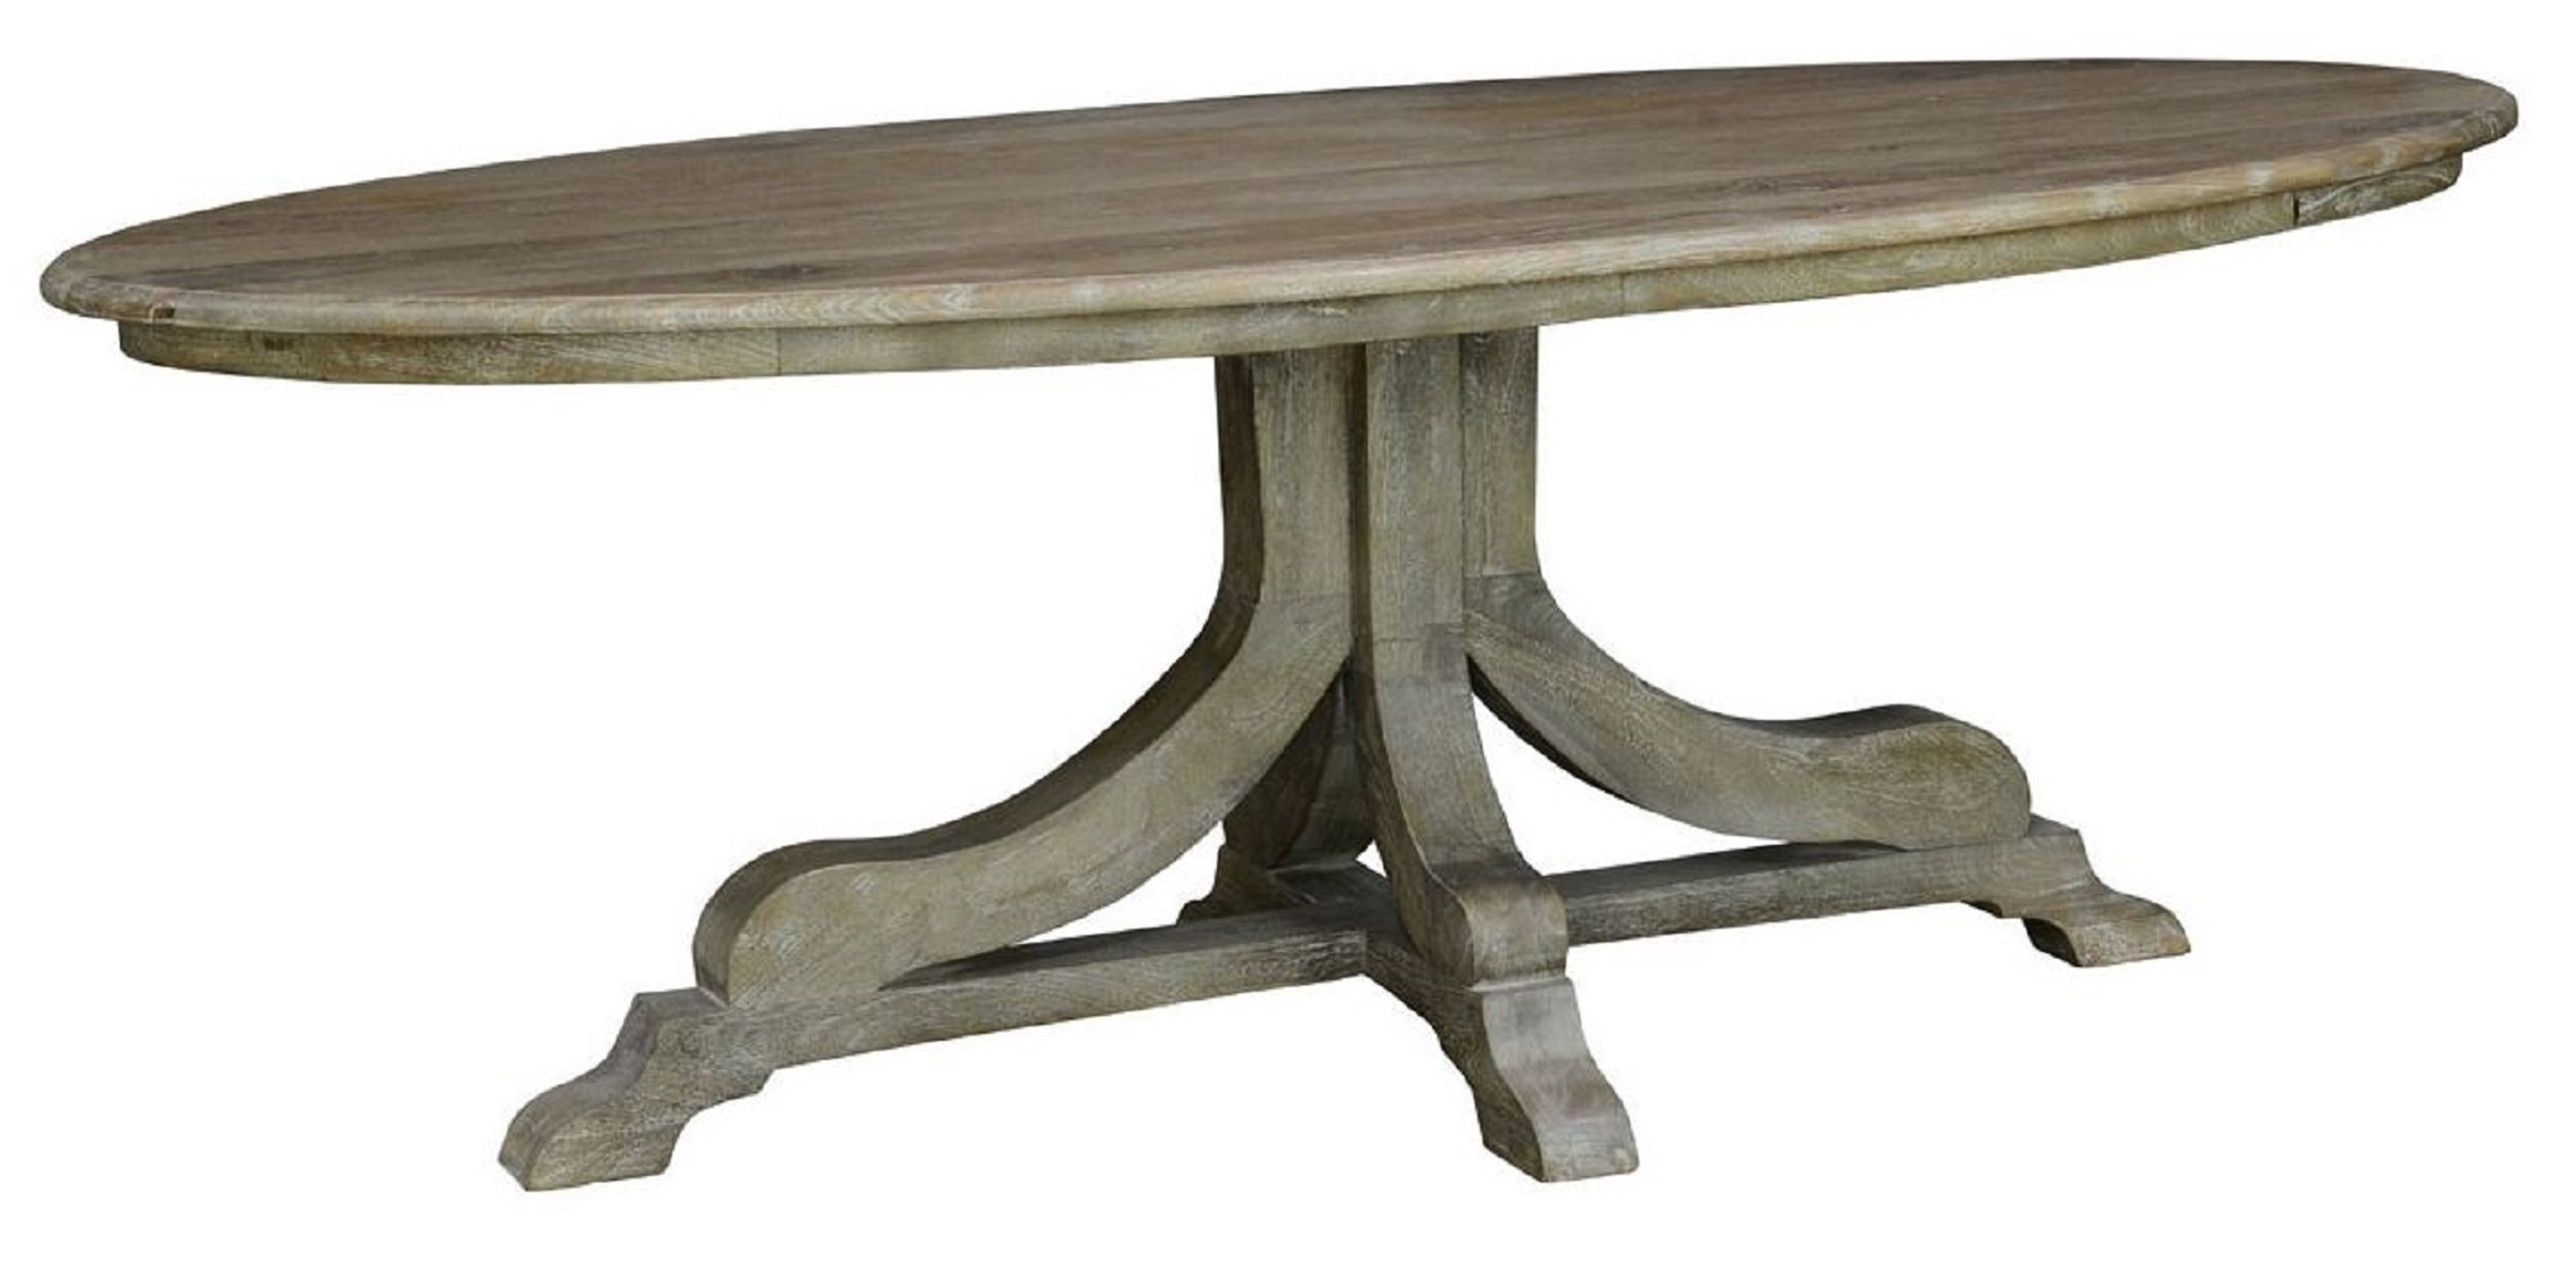 Pedestal tables oval pedestal dining table - modern industrial transition dining tables NSUGQVY